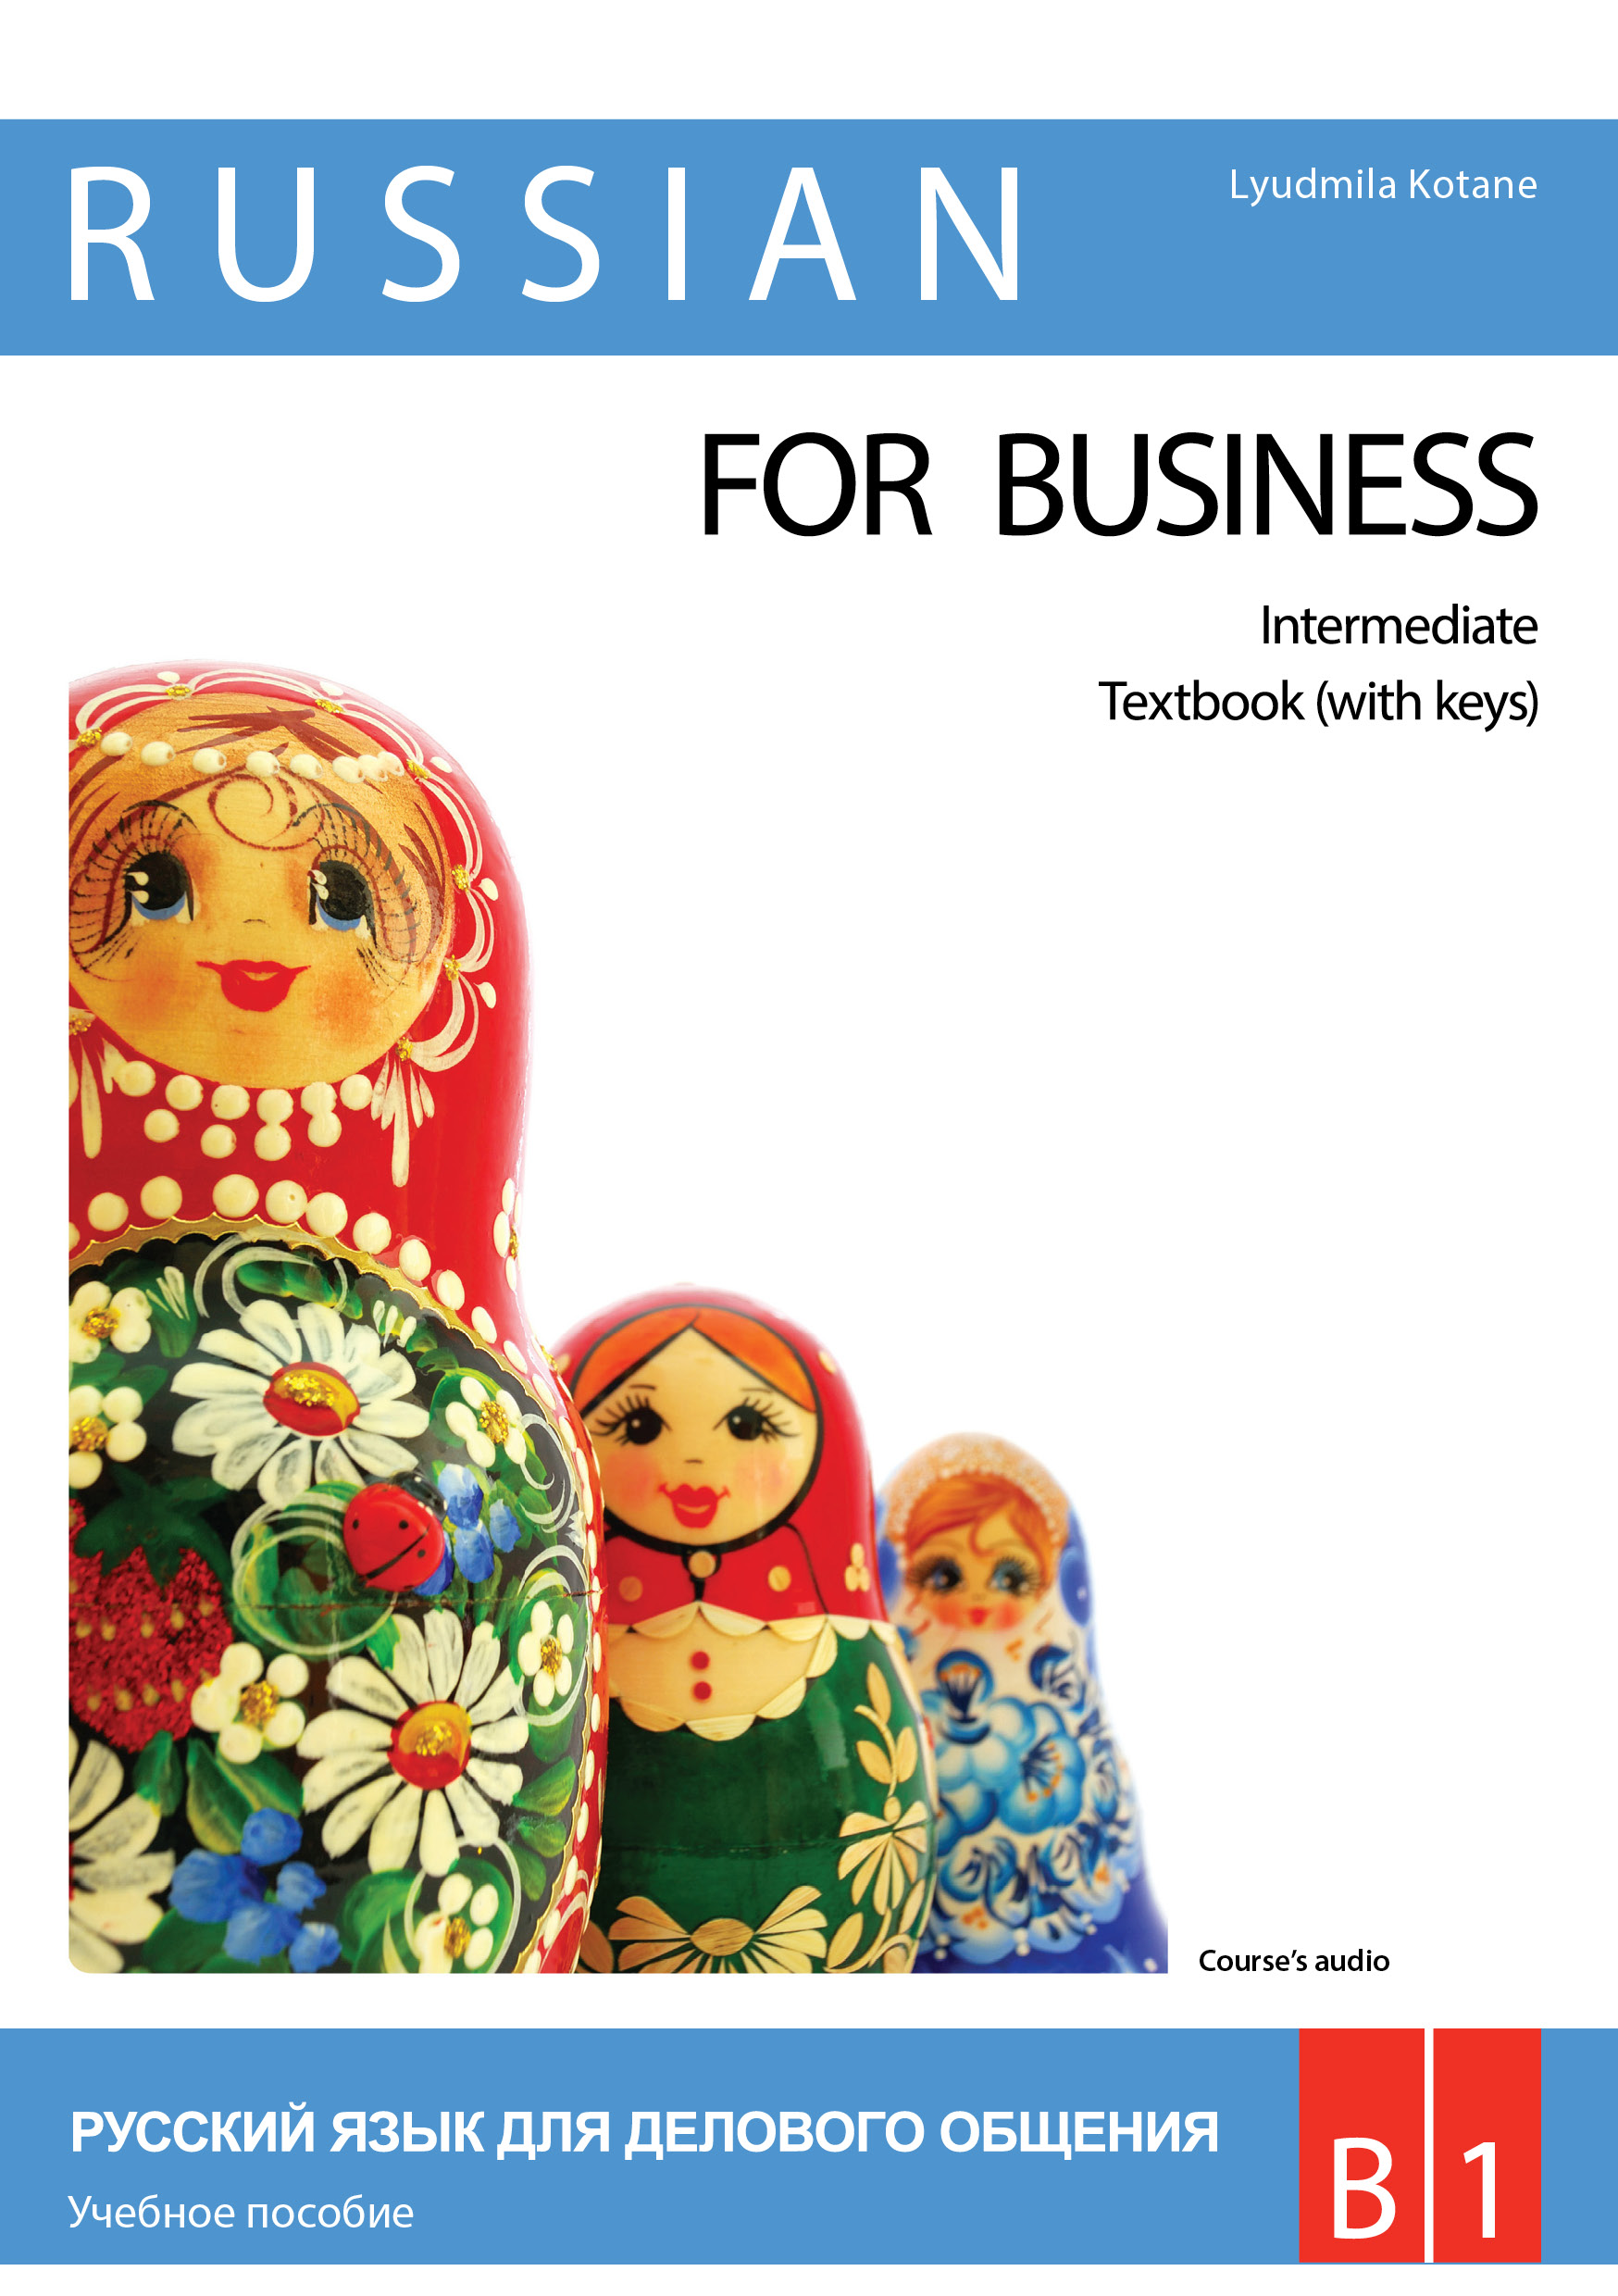 B1_textbook_cover